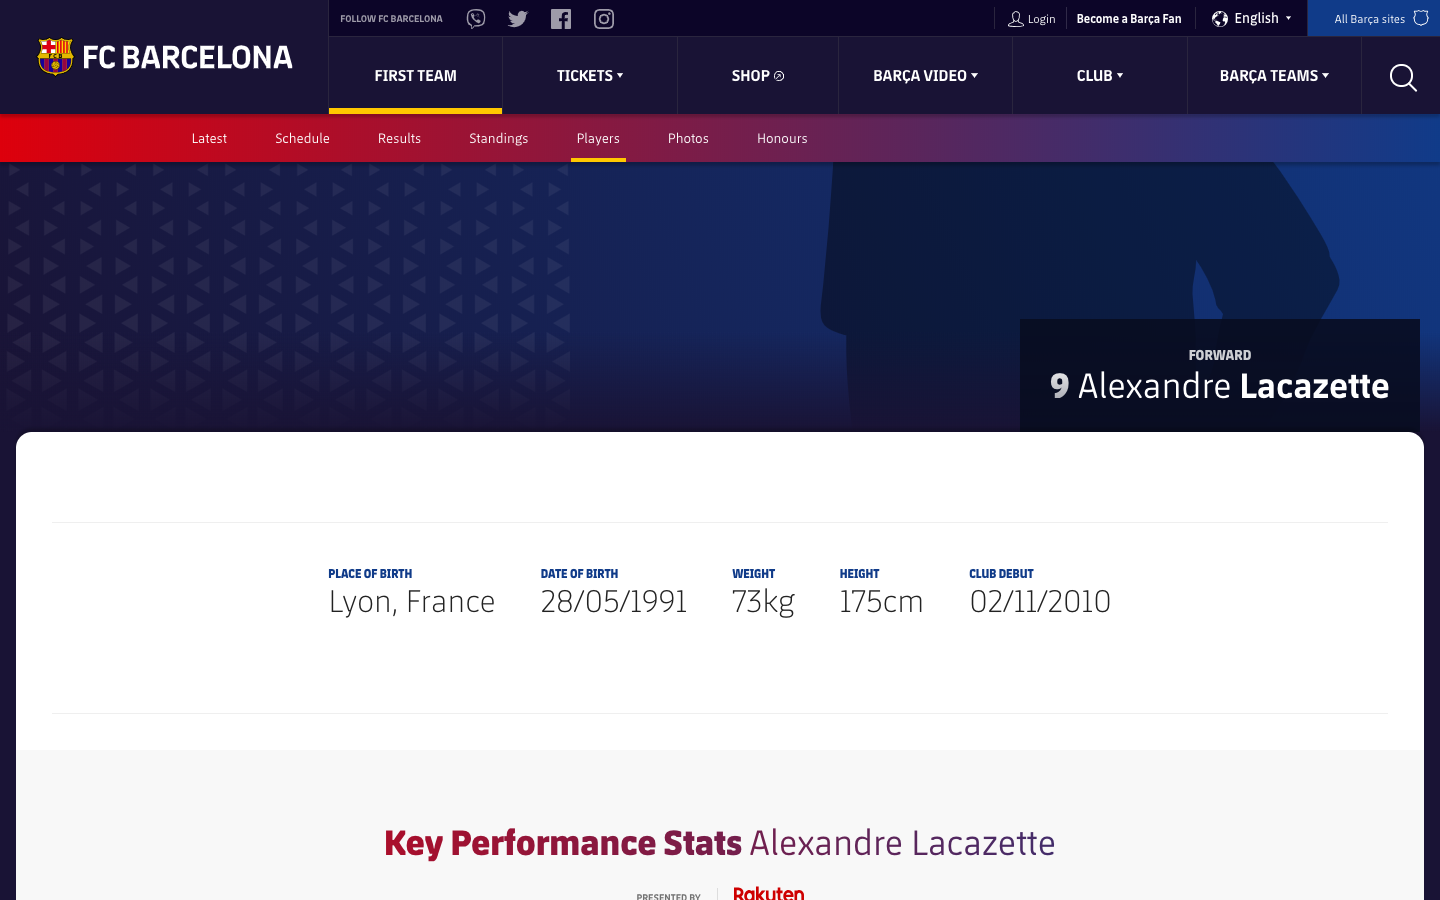 Why Alexandre Lacazette is listed on Barcelona's website